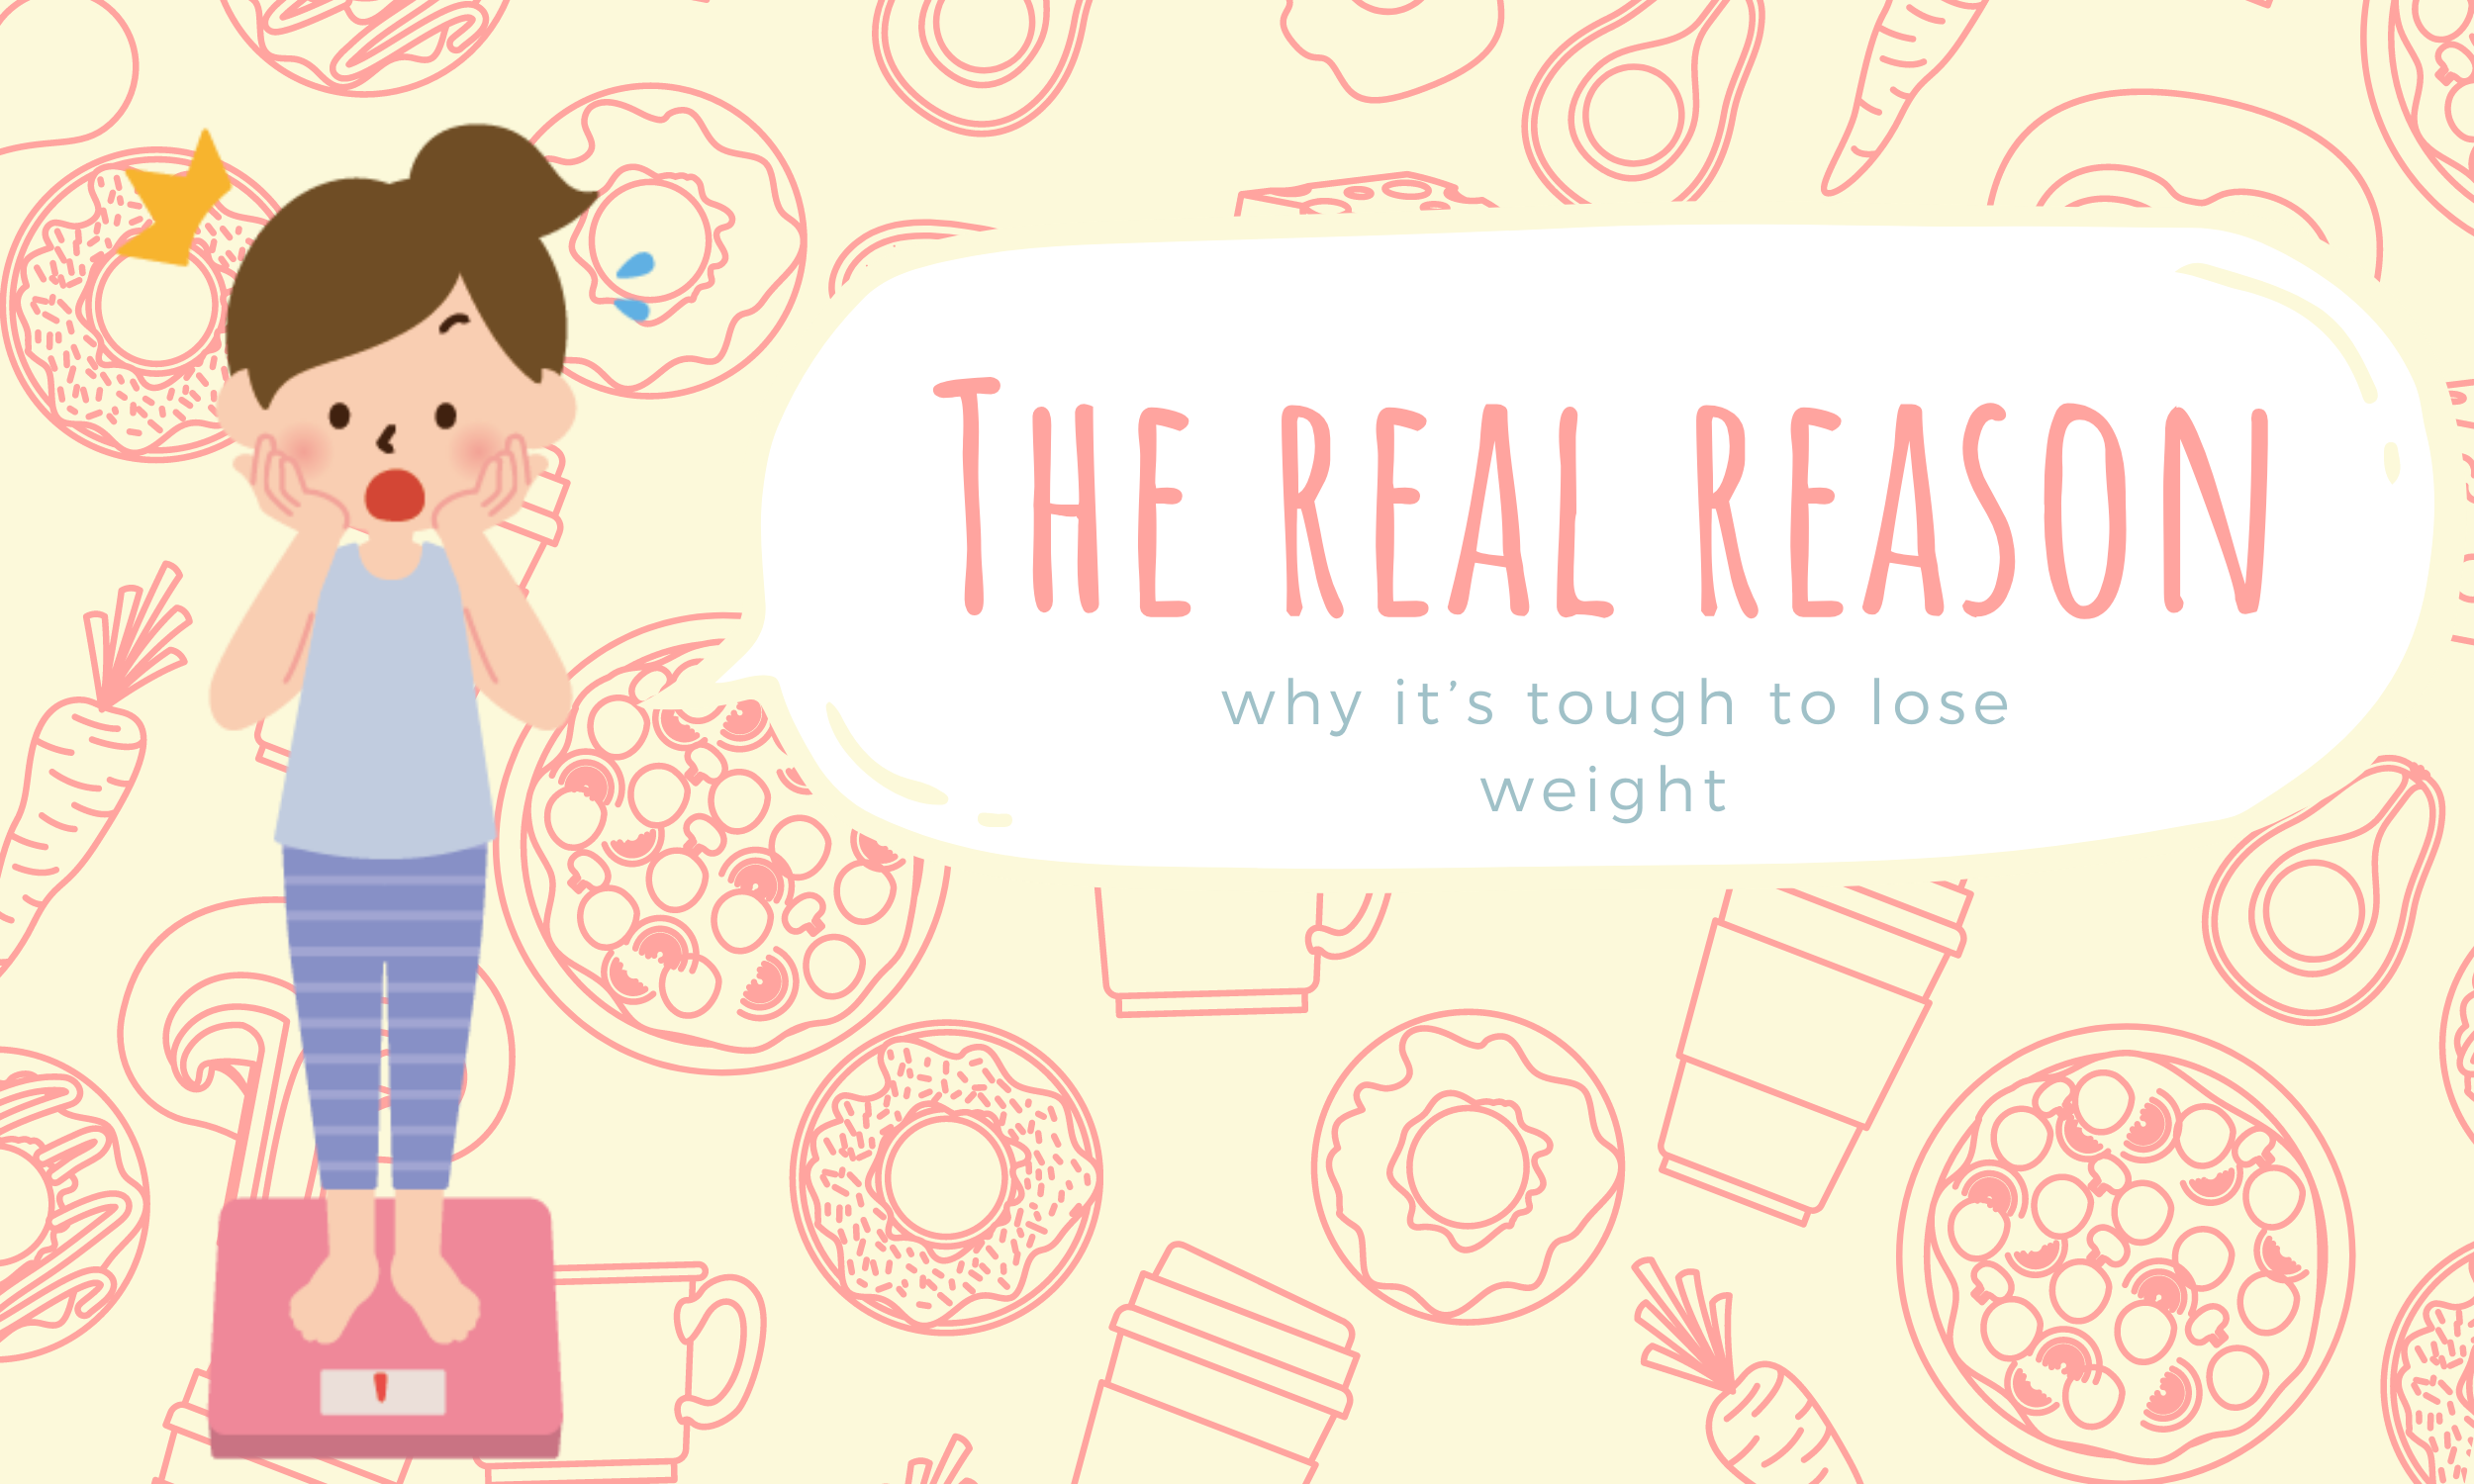 The-real-reason-why-it-s-tough-to-lose-weight